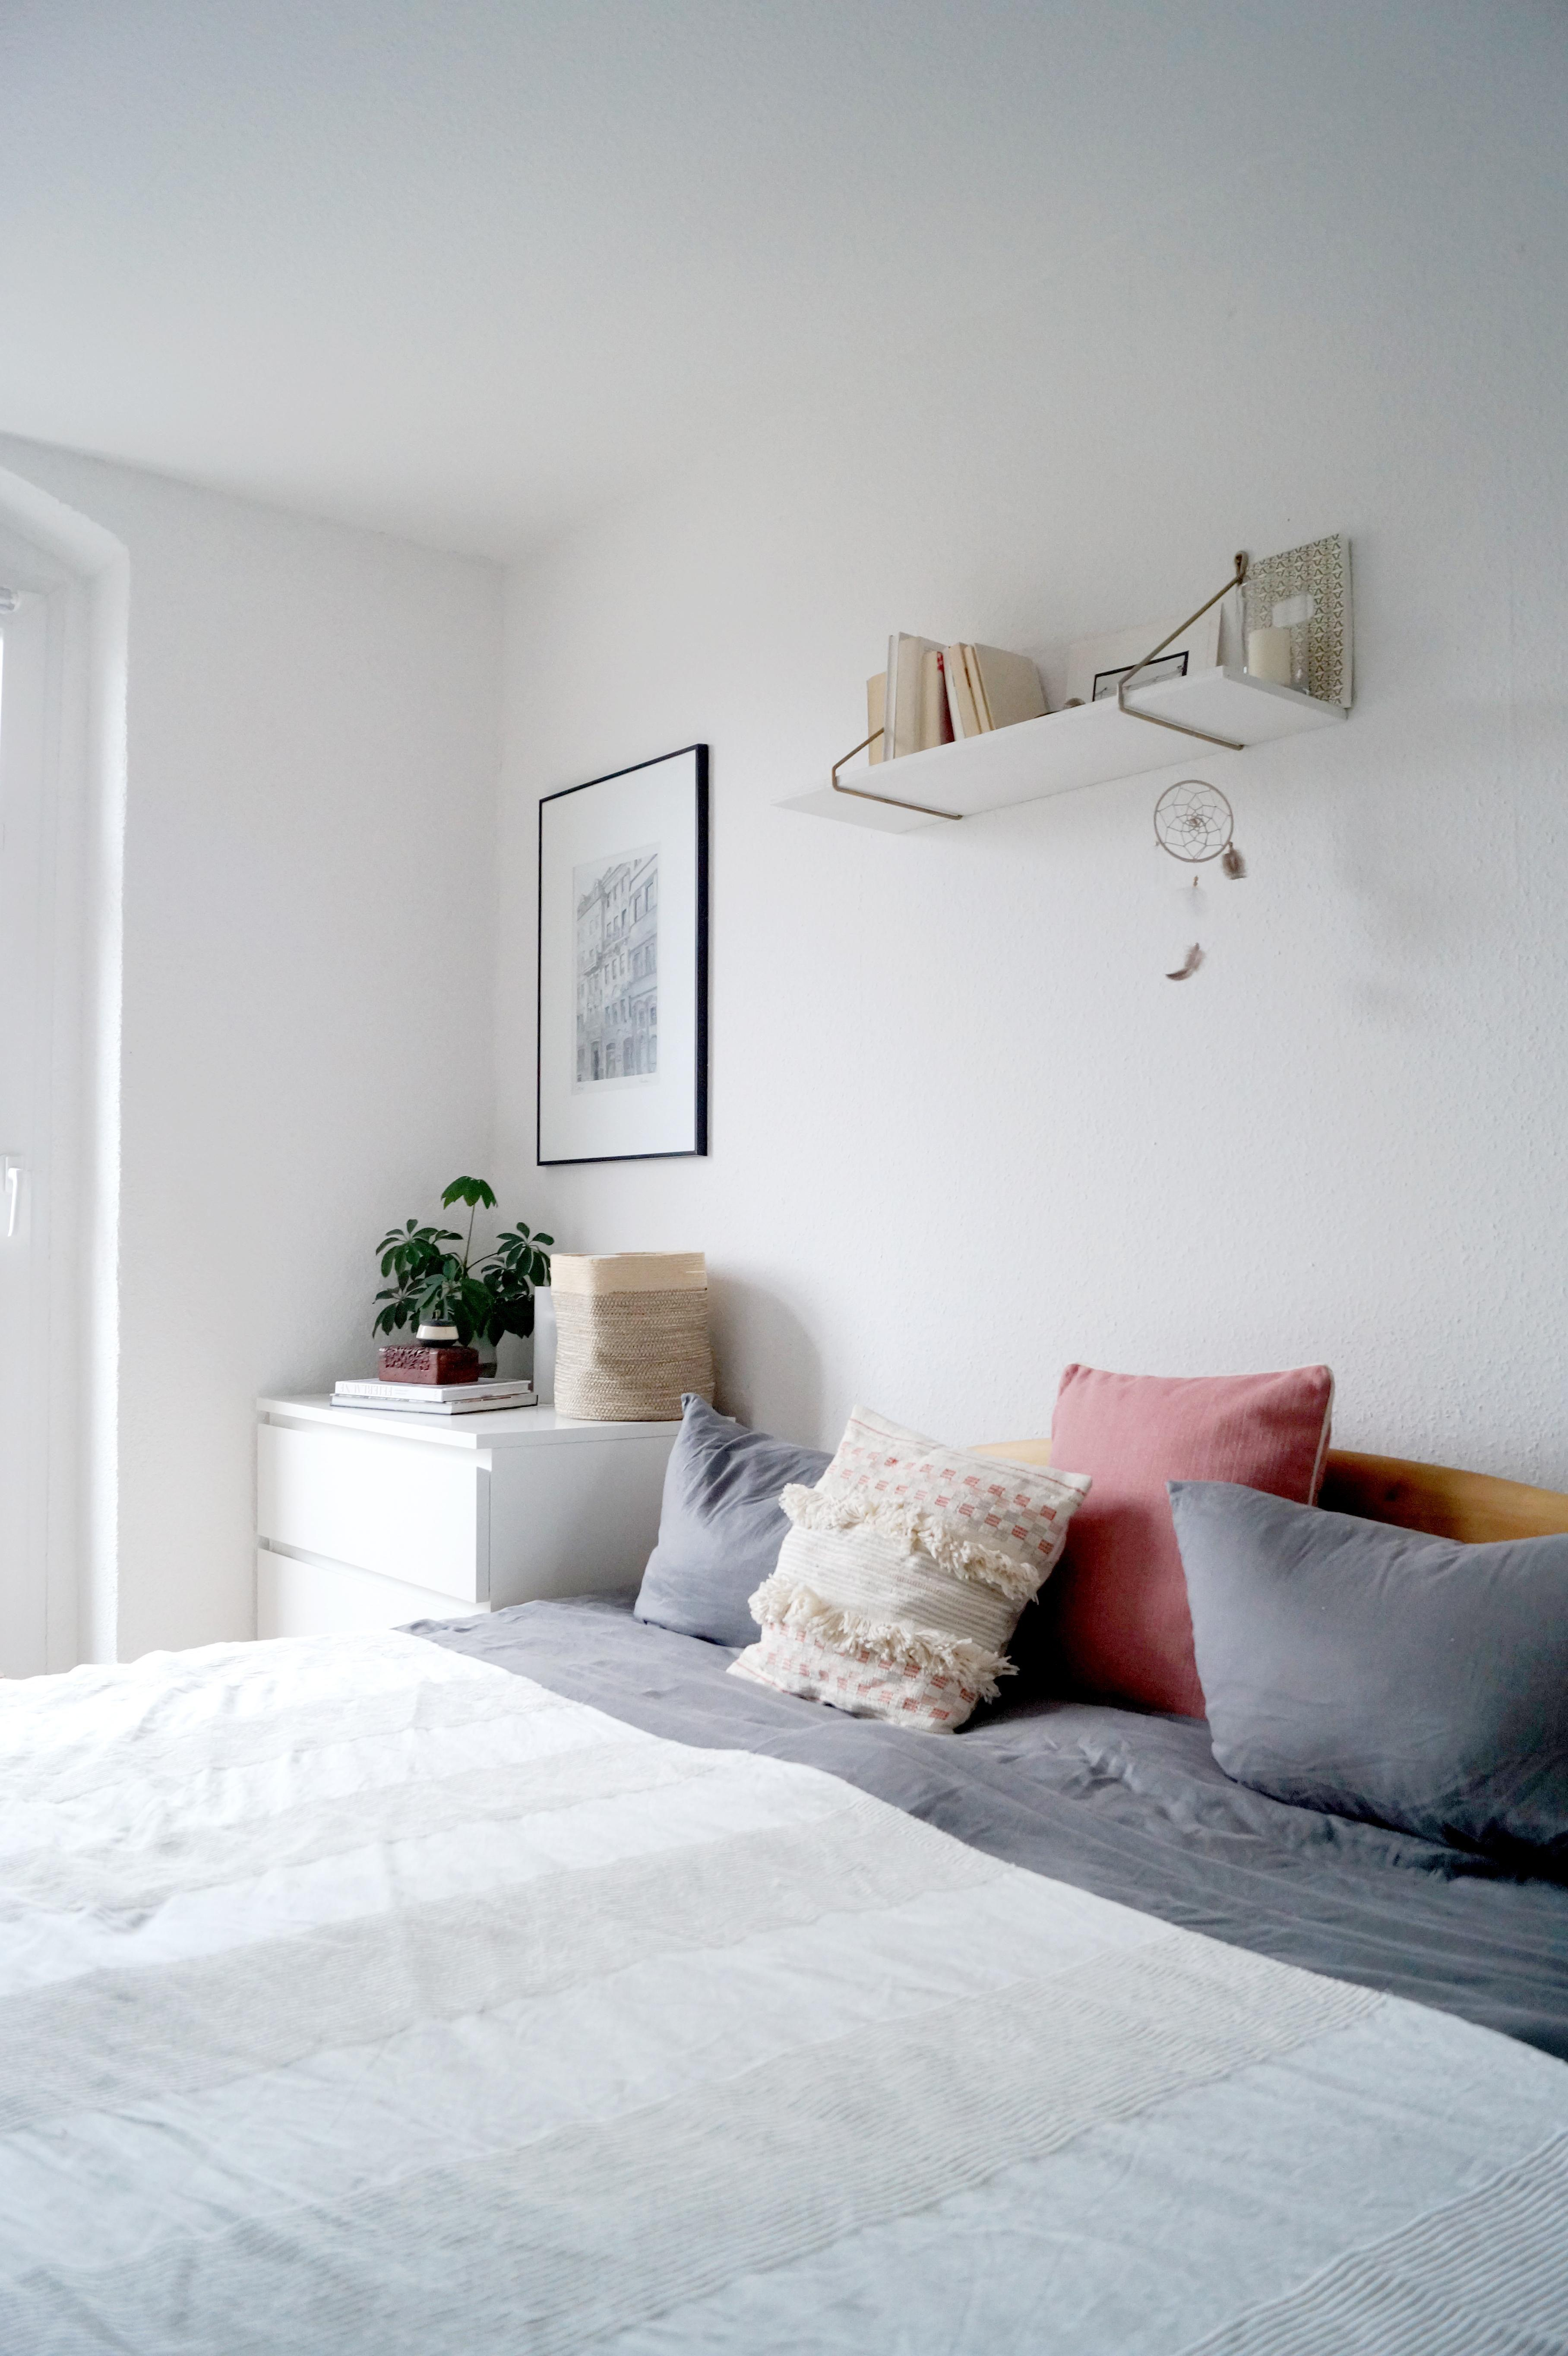 #bedroom #scandinavian #minimalism #altbau